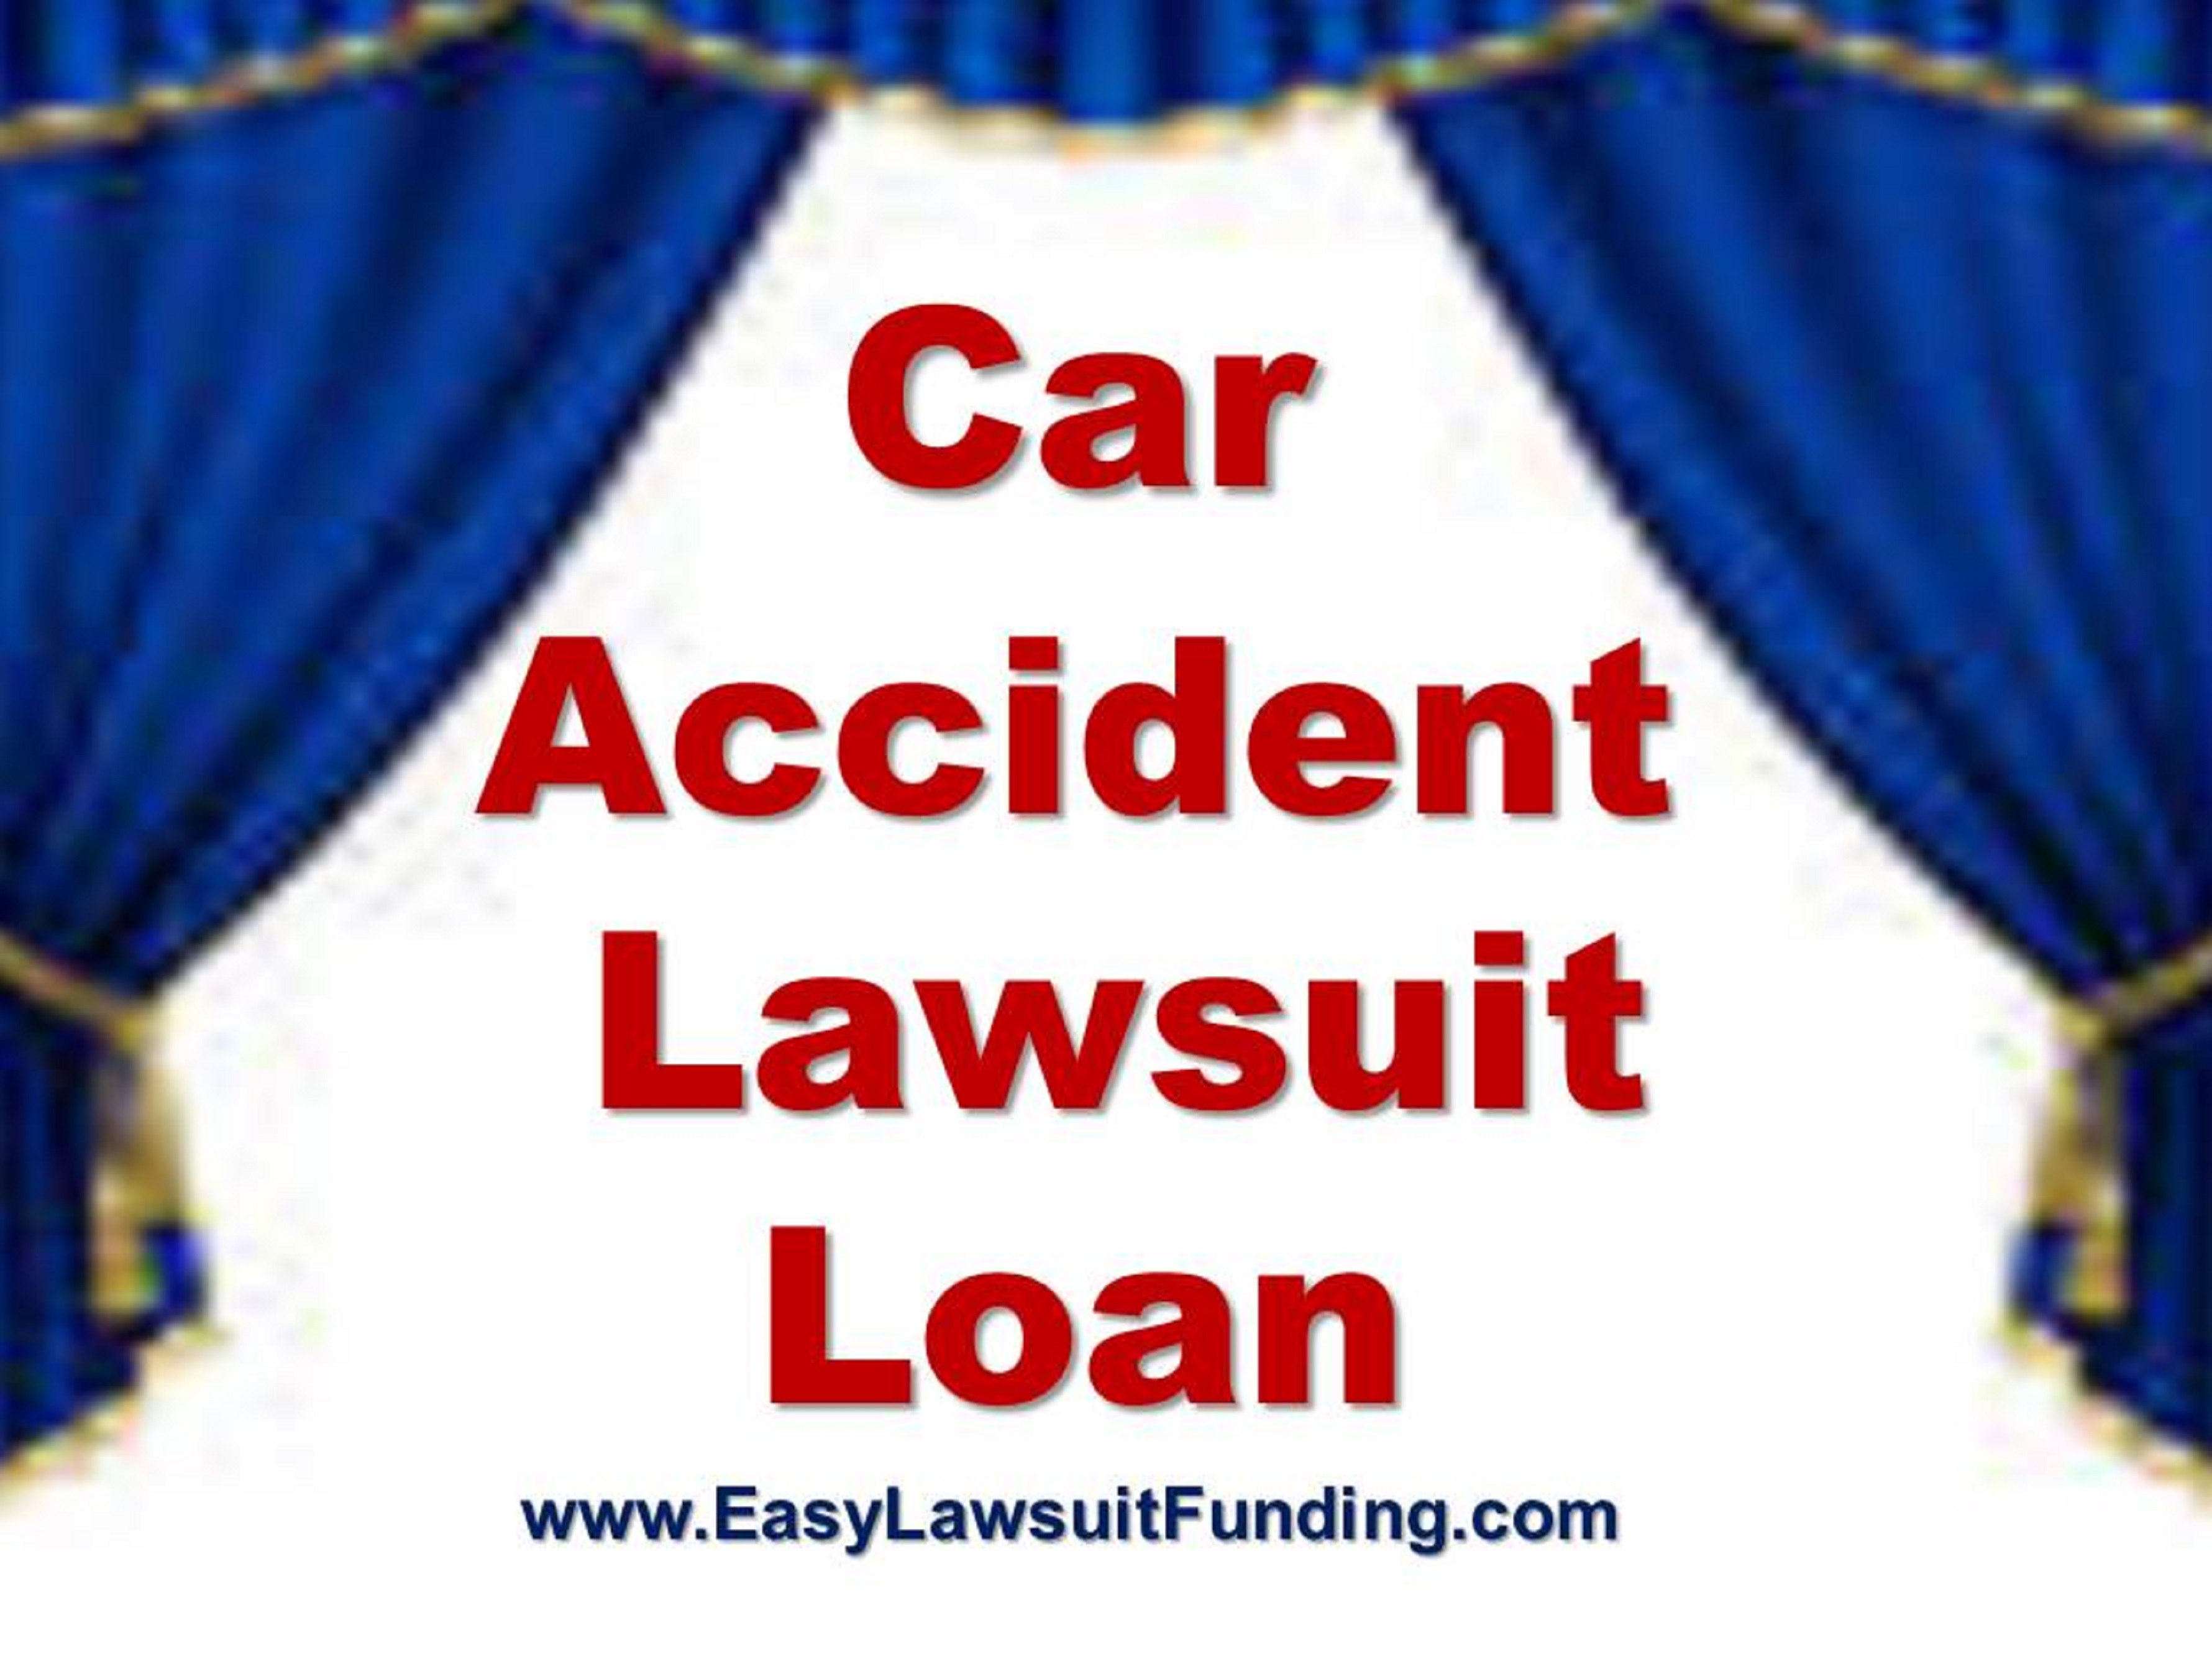 Accident easylawsuitfunding for Learn mortgage